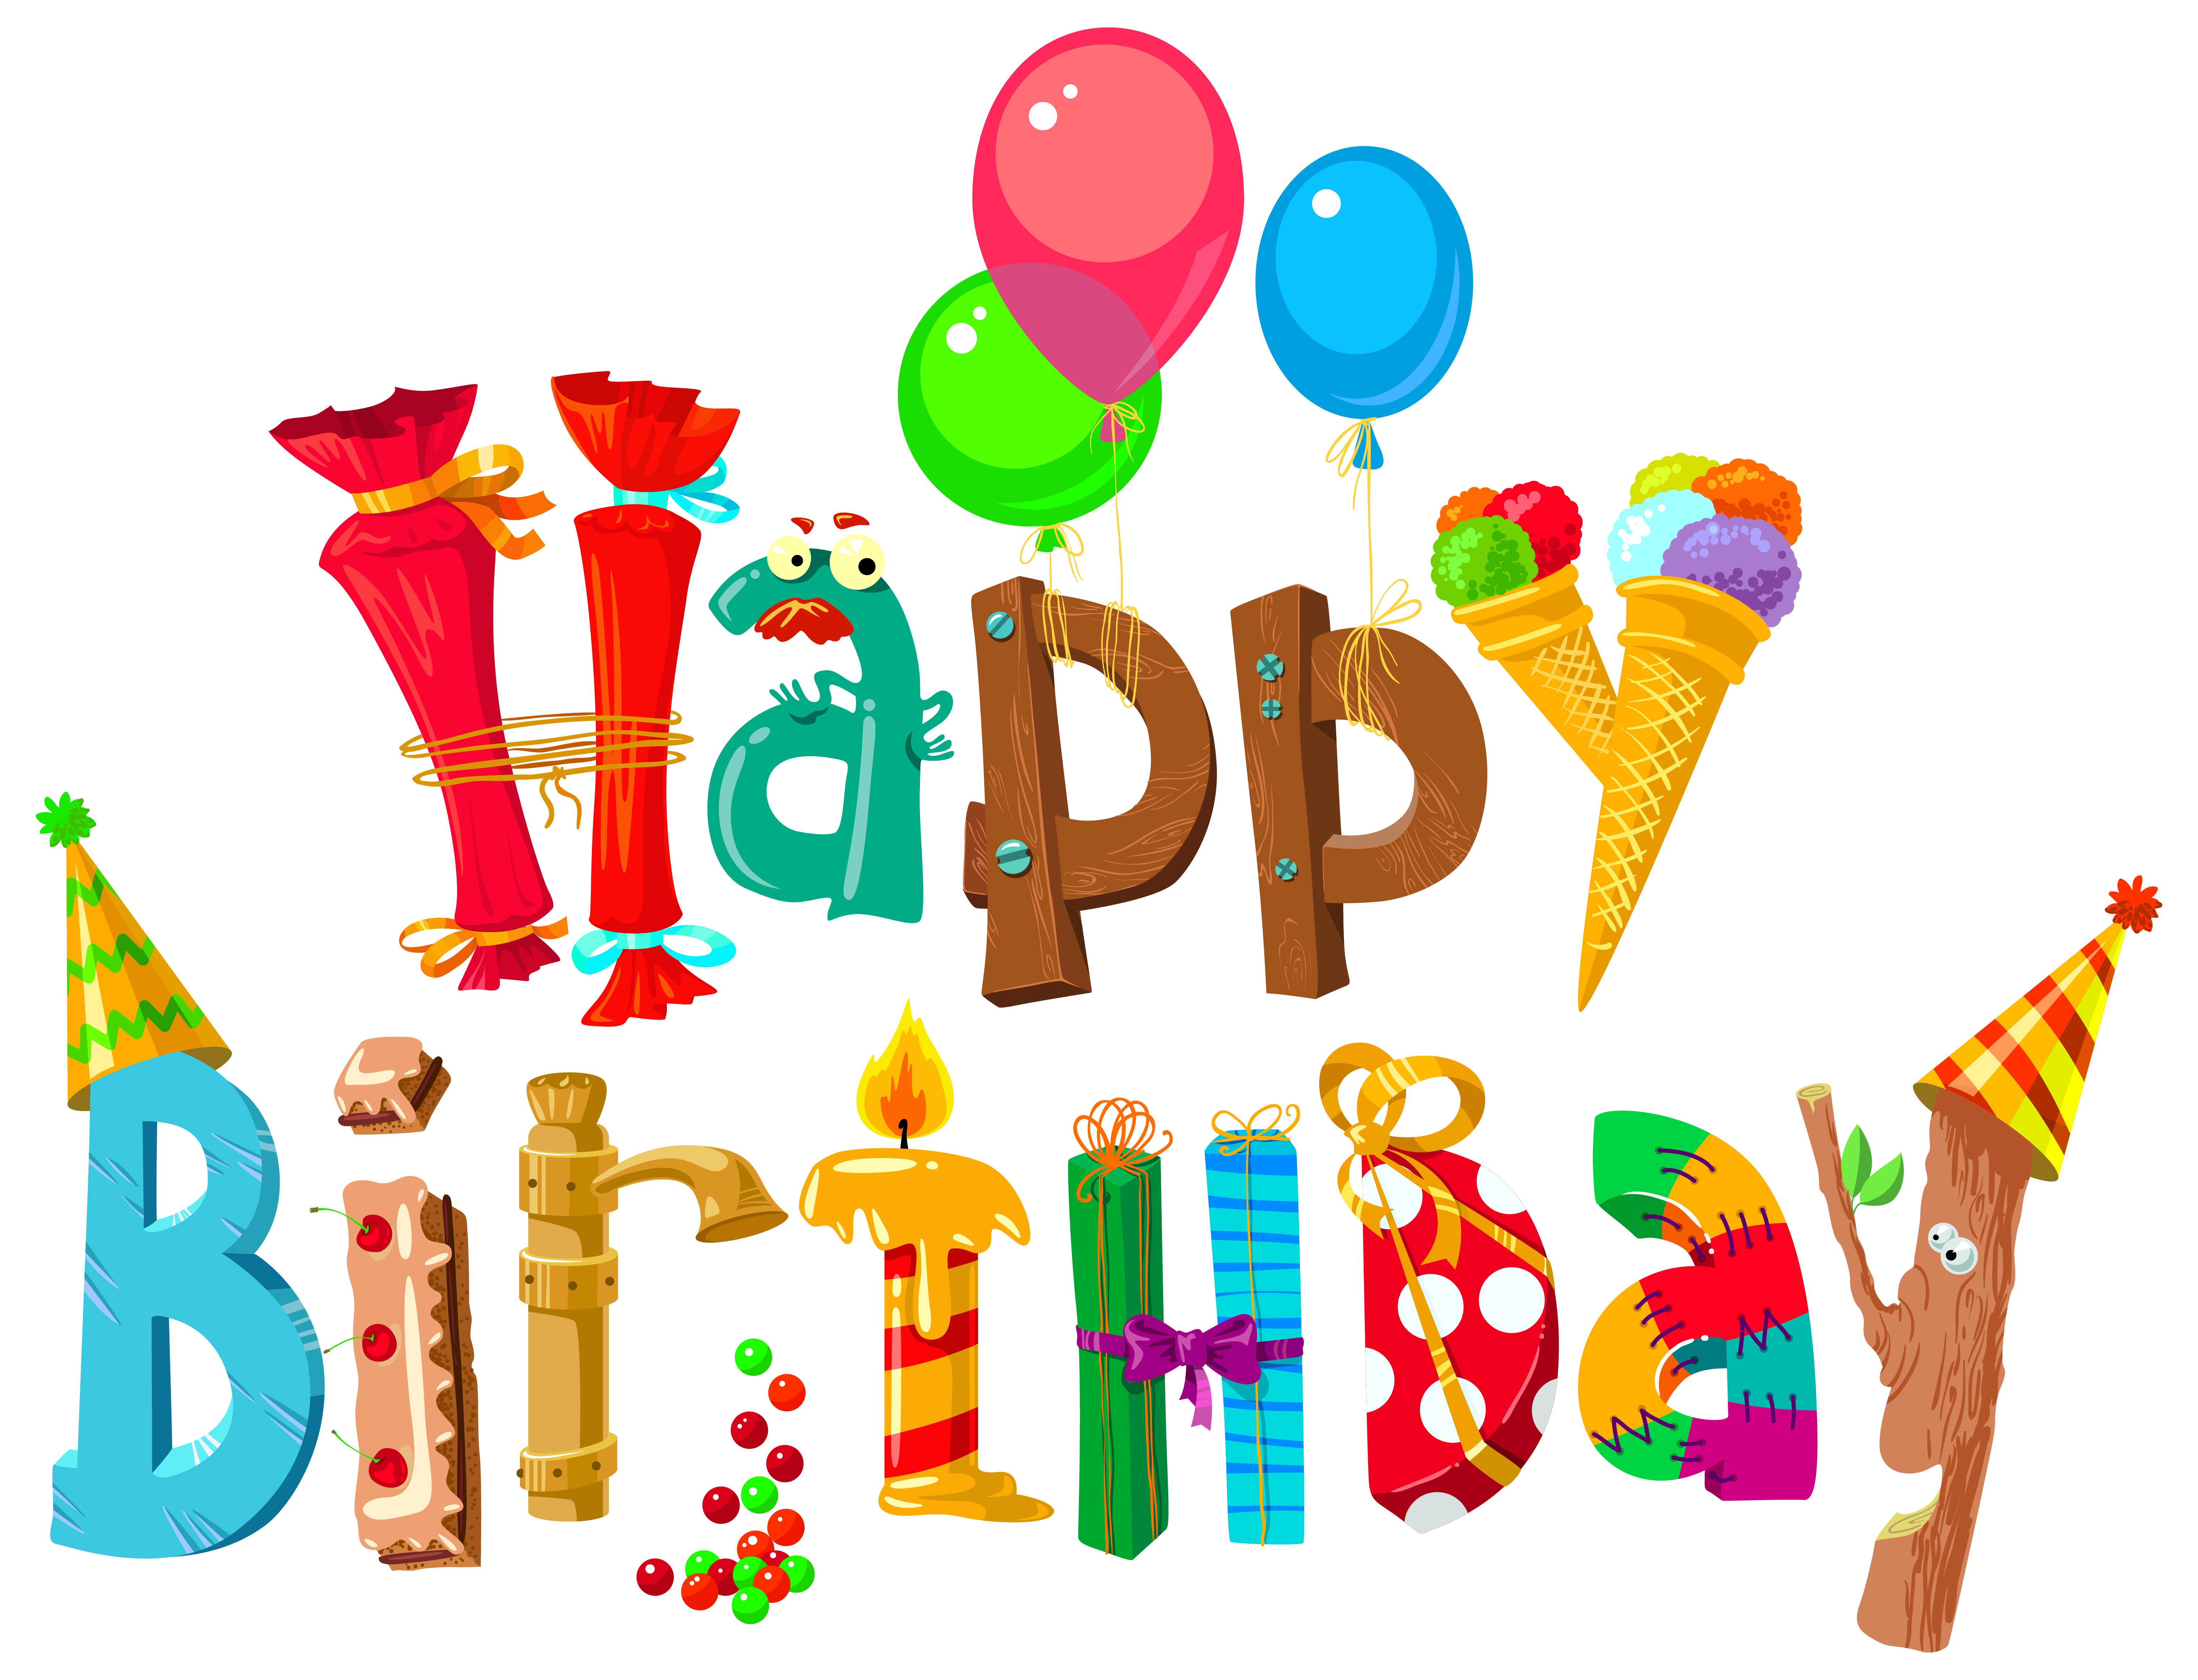 Free birthday birthday clipart .-Free birthday birthday clipart .-2